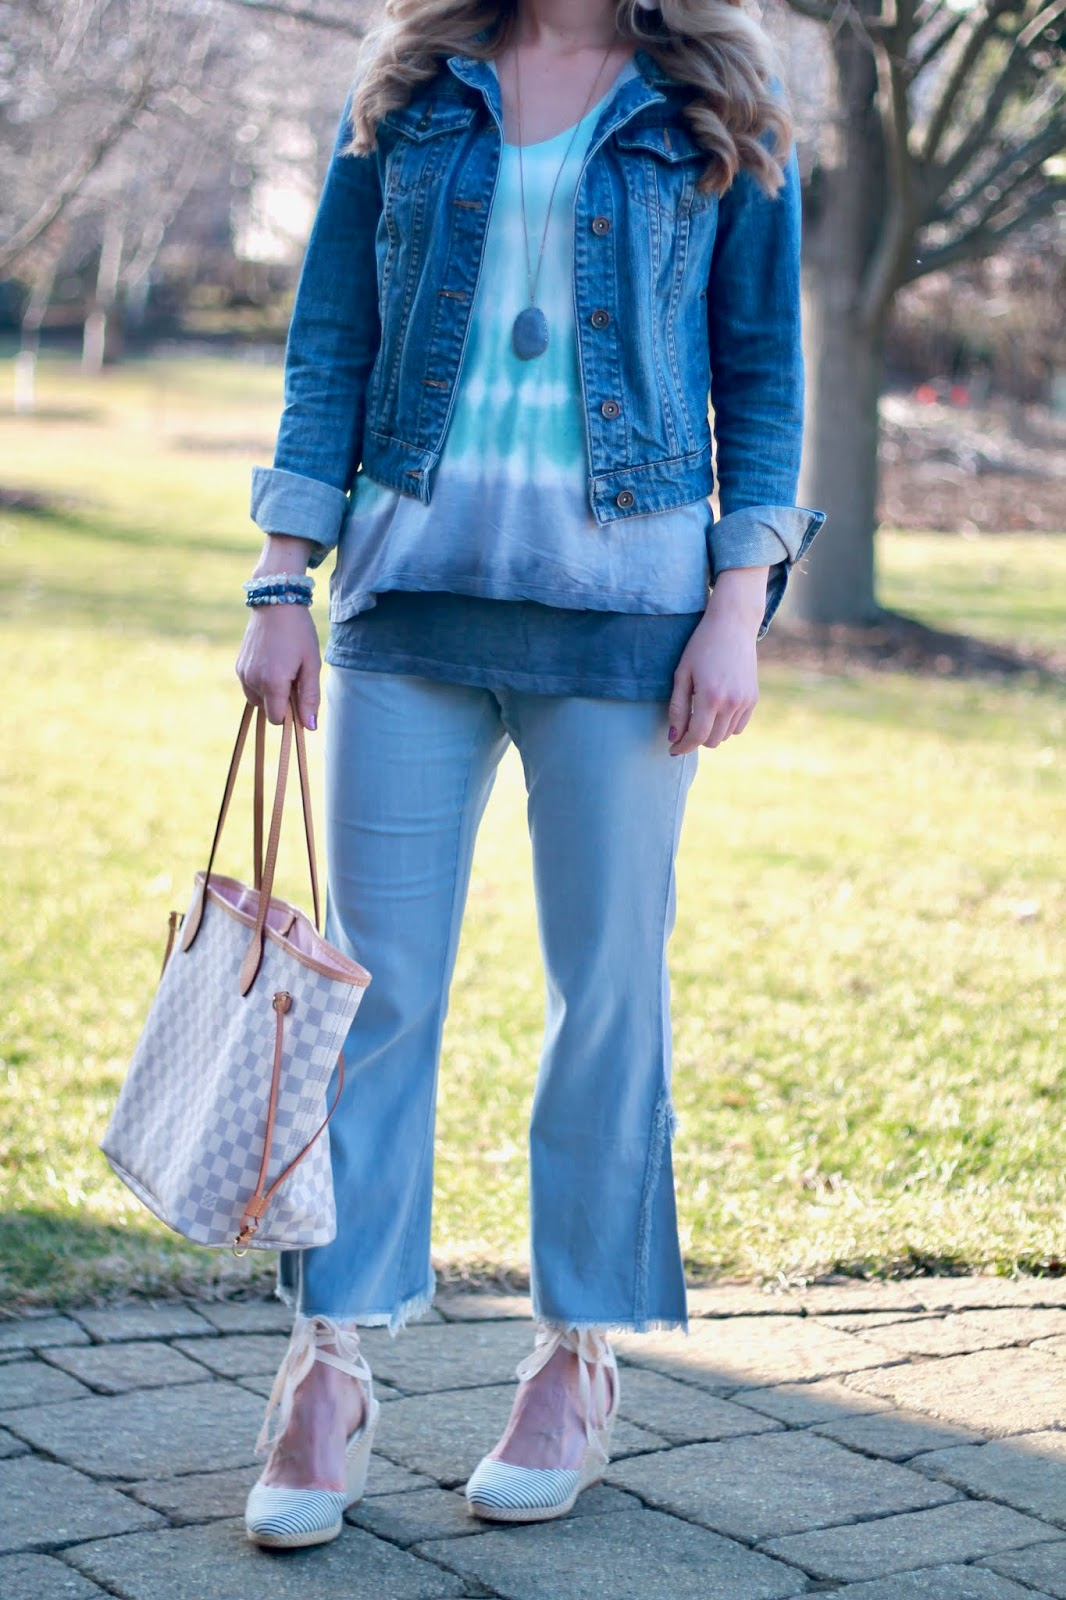 XCVI tie dye, tie dye for spring, tie dye tank top, denim jacket, blue flare crop pants, lace up wedges, pink ankle pants, OTS tie dye top, black and white tie dye top, distressed denim, peep toe booties